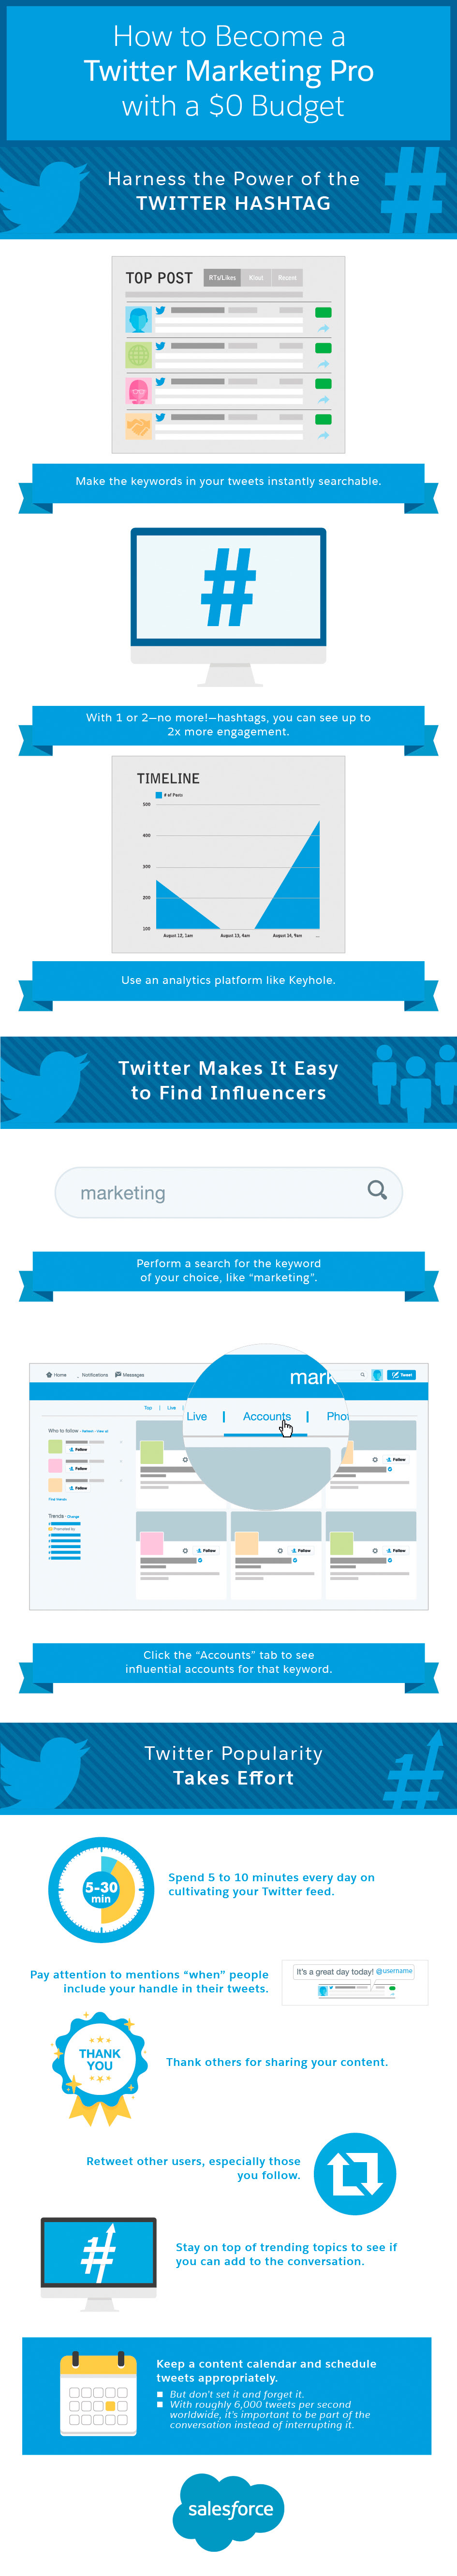 #SocialMedia Tips: How To Maximize Your Influence On Twitter - #infographic